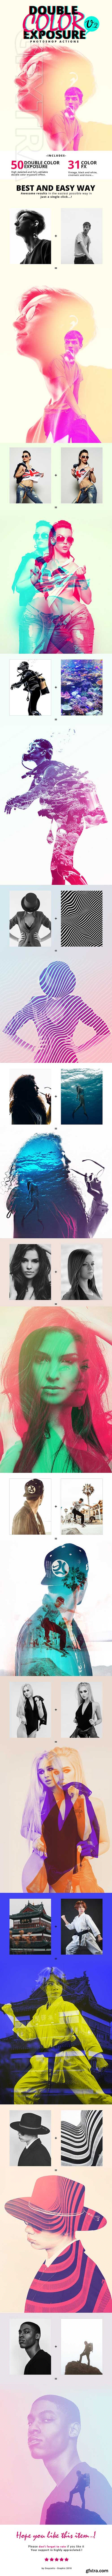 GraphicRiver - Double Color Exposure Photoshop Actions V 2 22778237